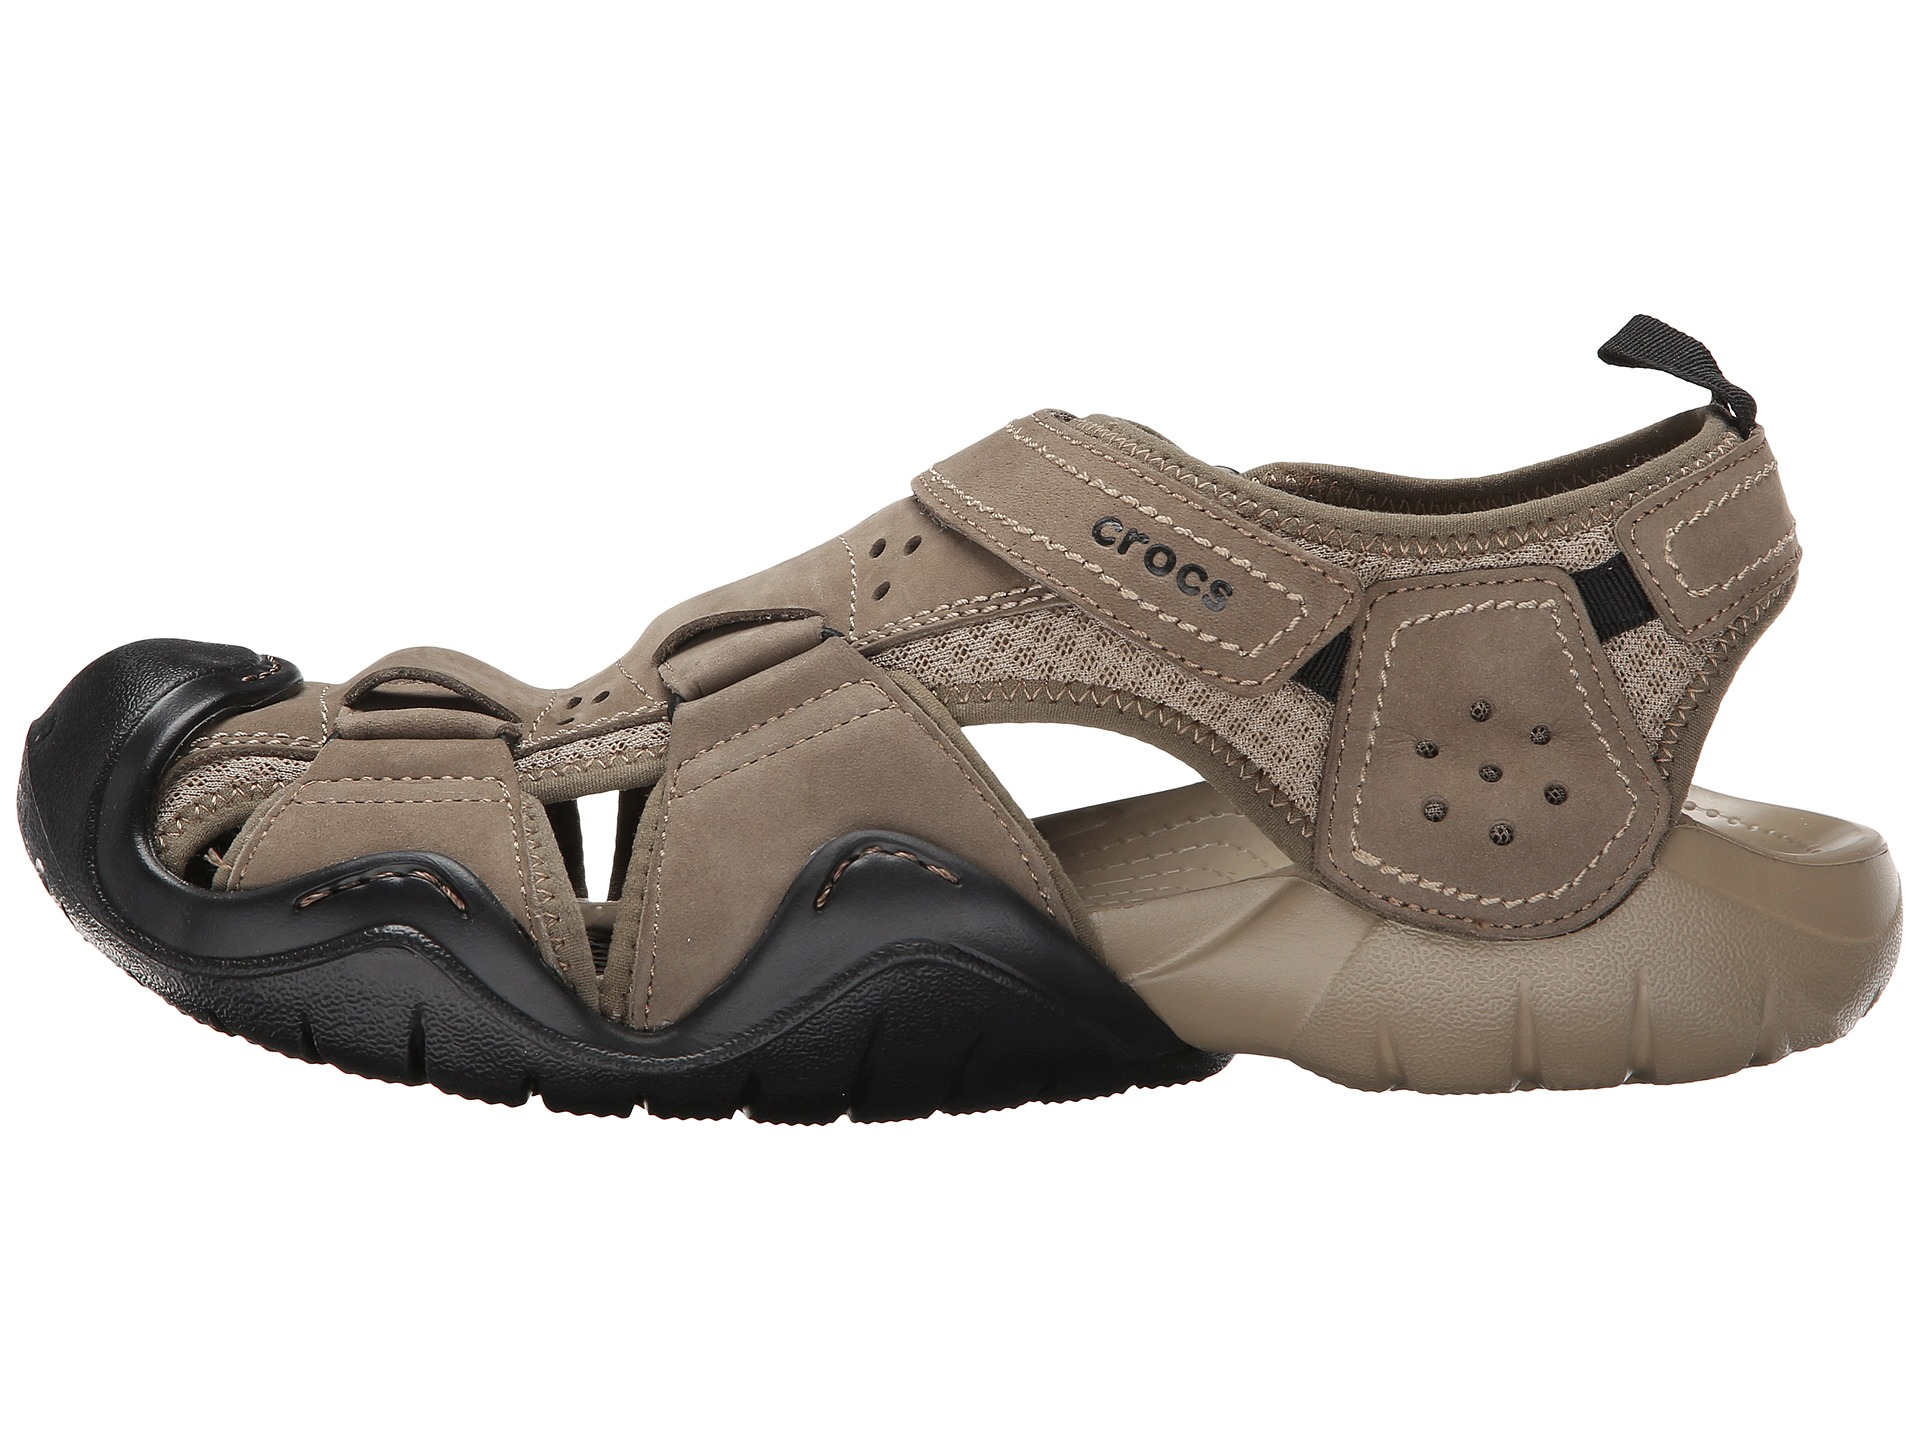 Crocs swiftwater leather fisherman walnut khaki zappos for Crocs fishing shoes